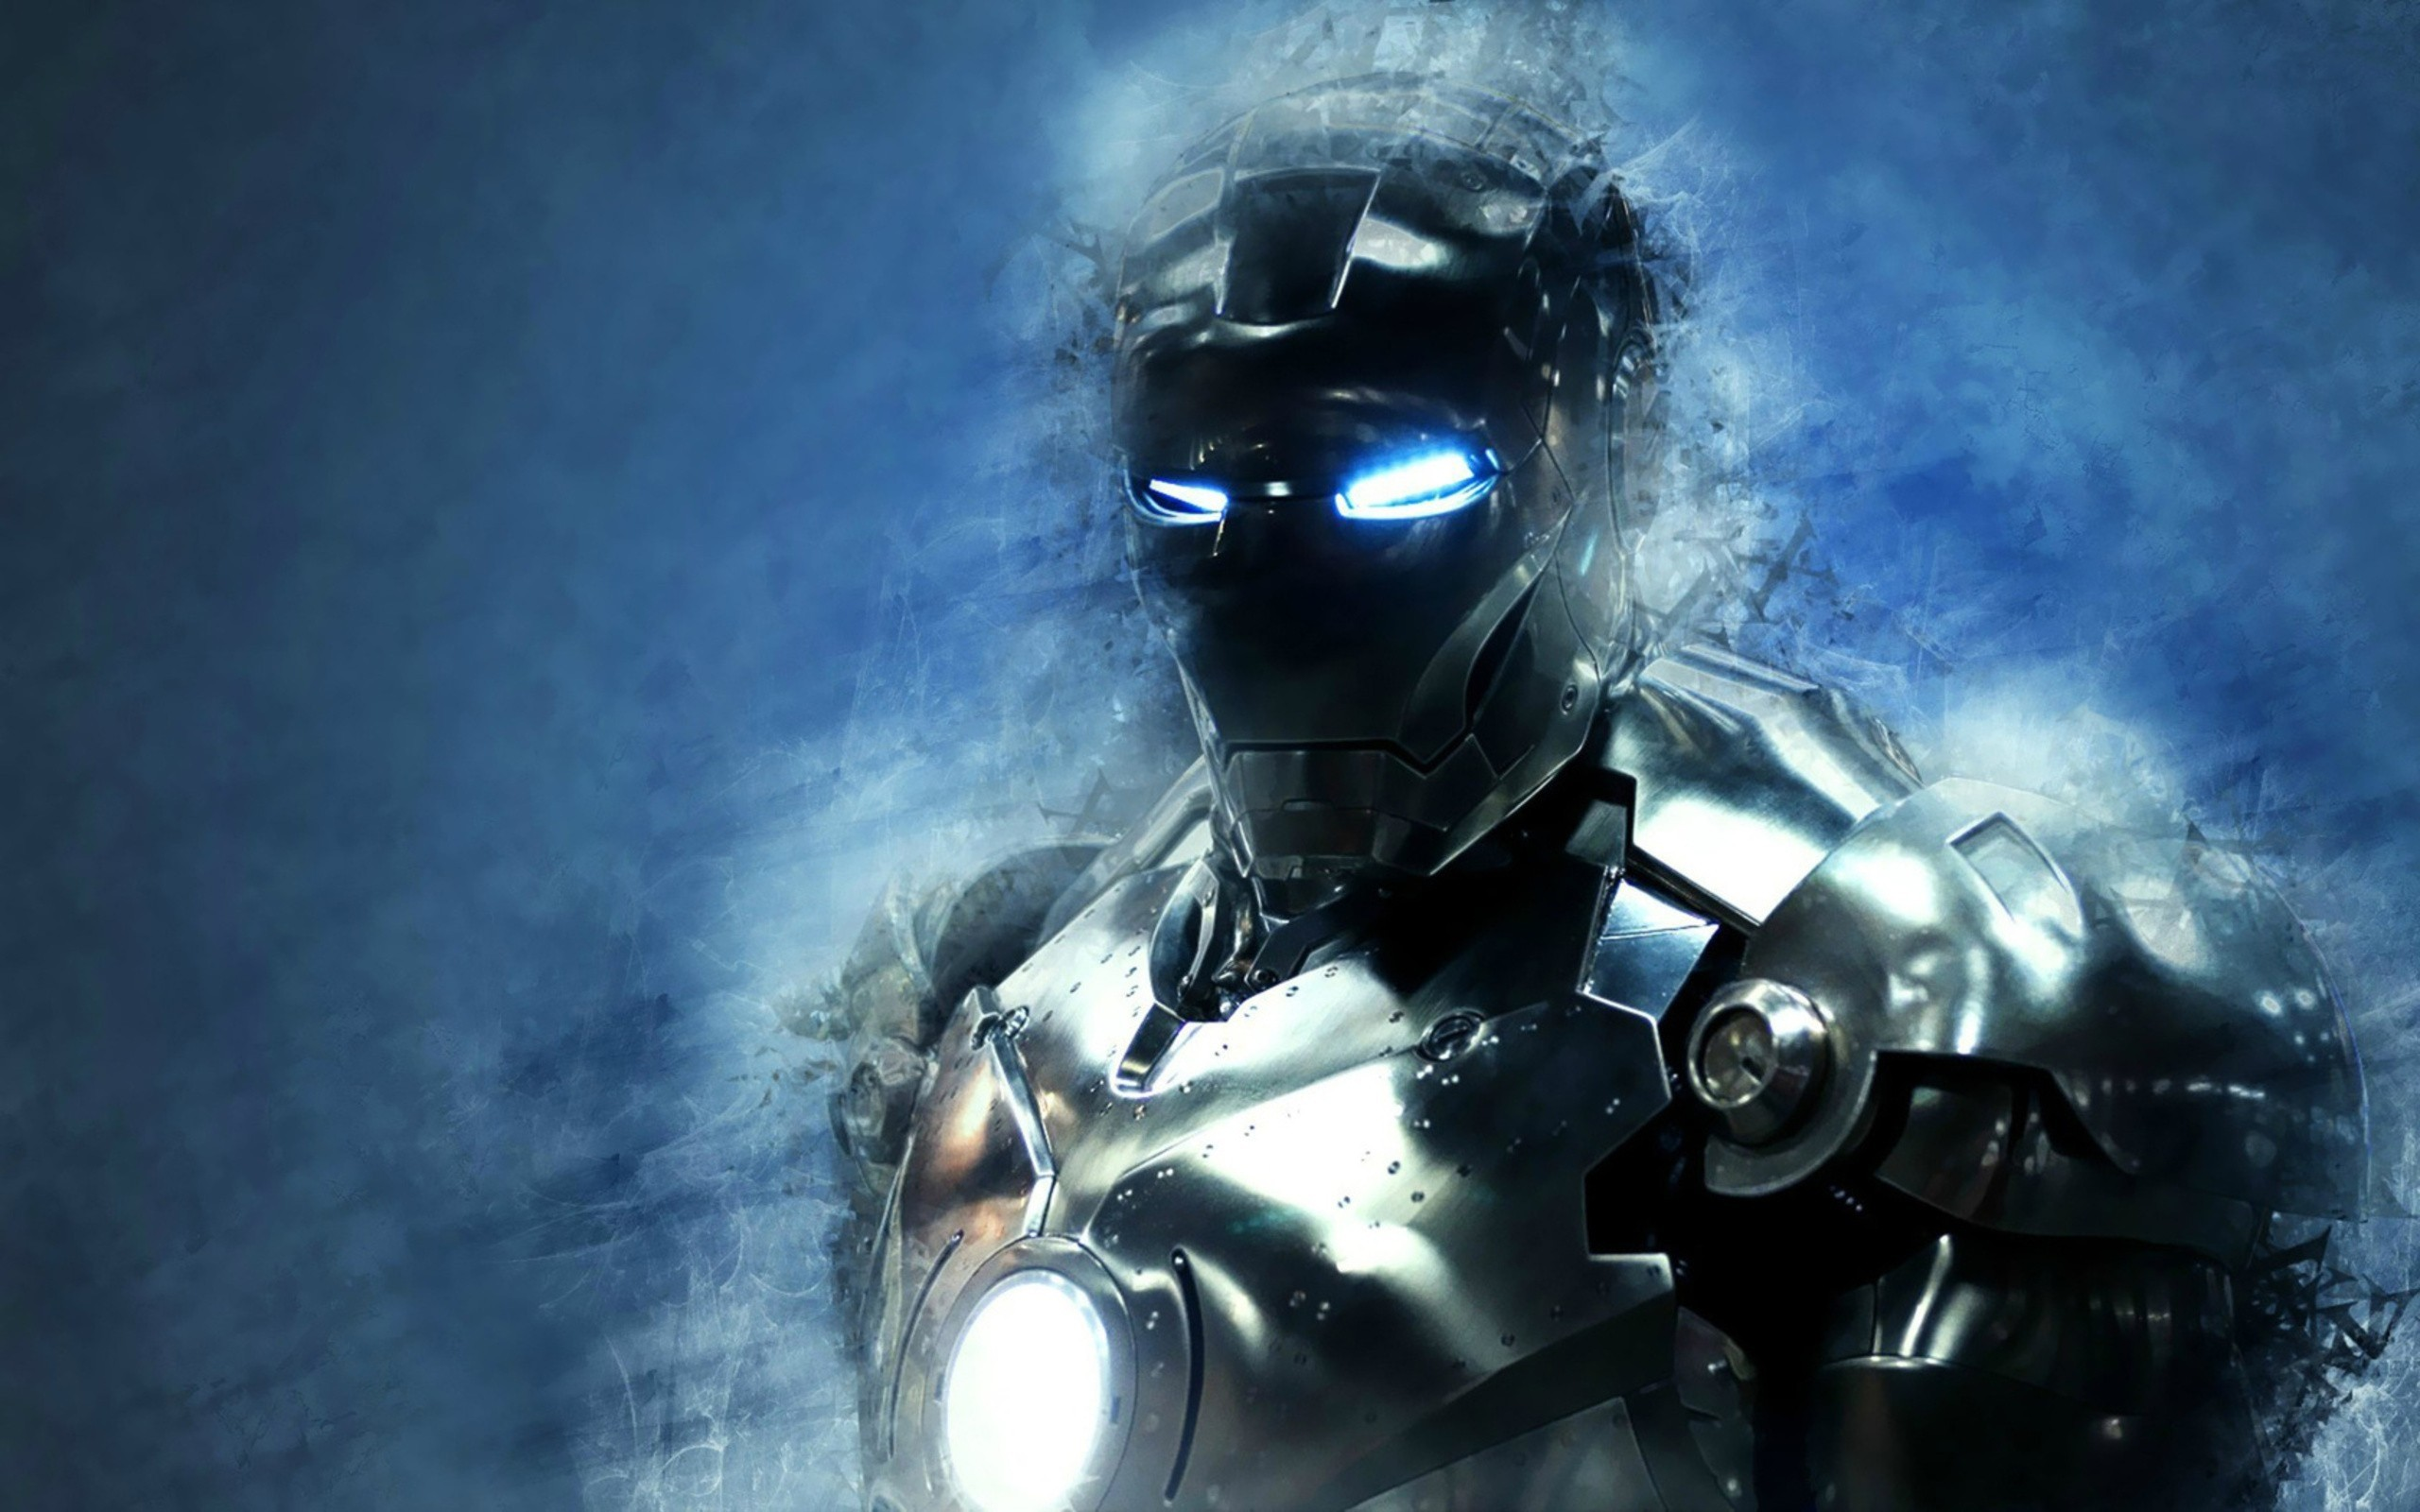 Res: 2560x1600, IRON MAN 3 ART - Online Wallpapers HD